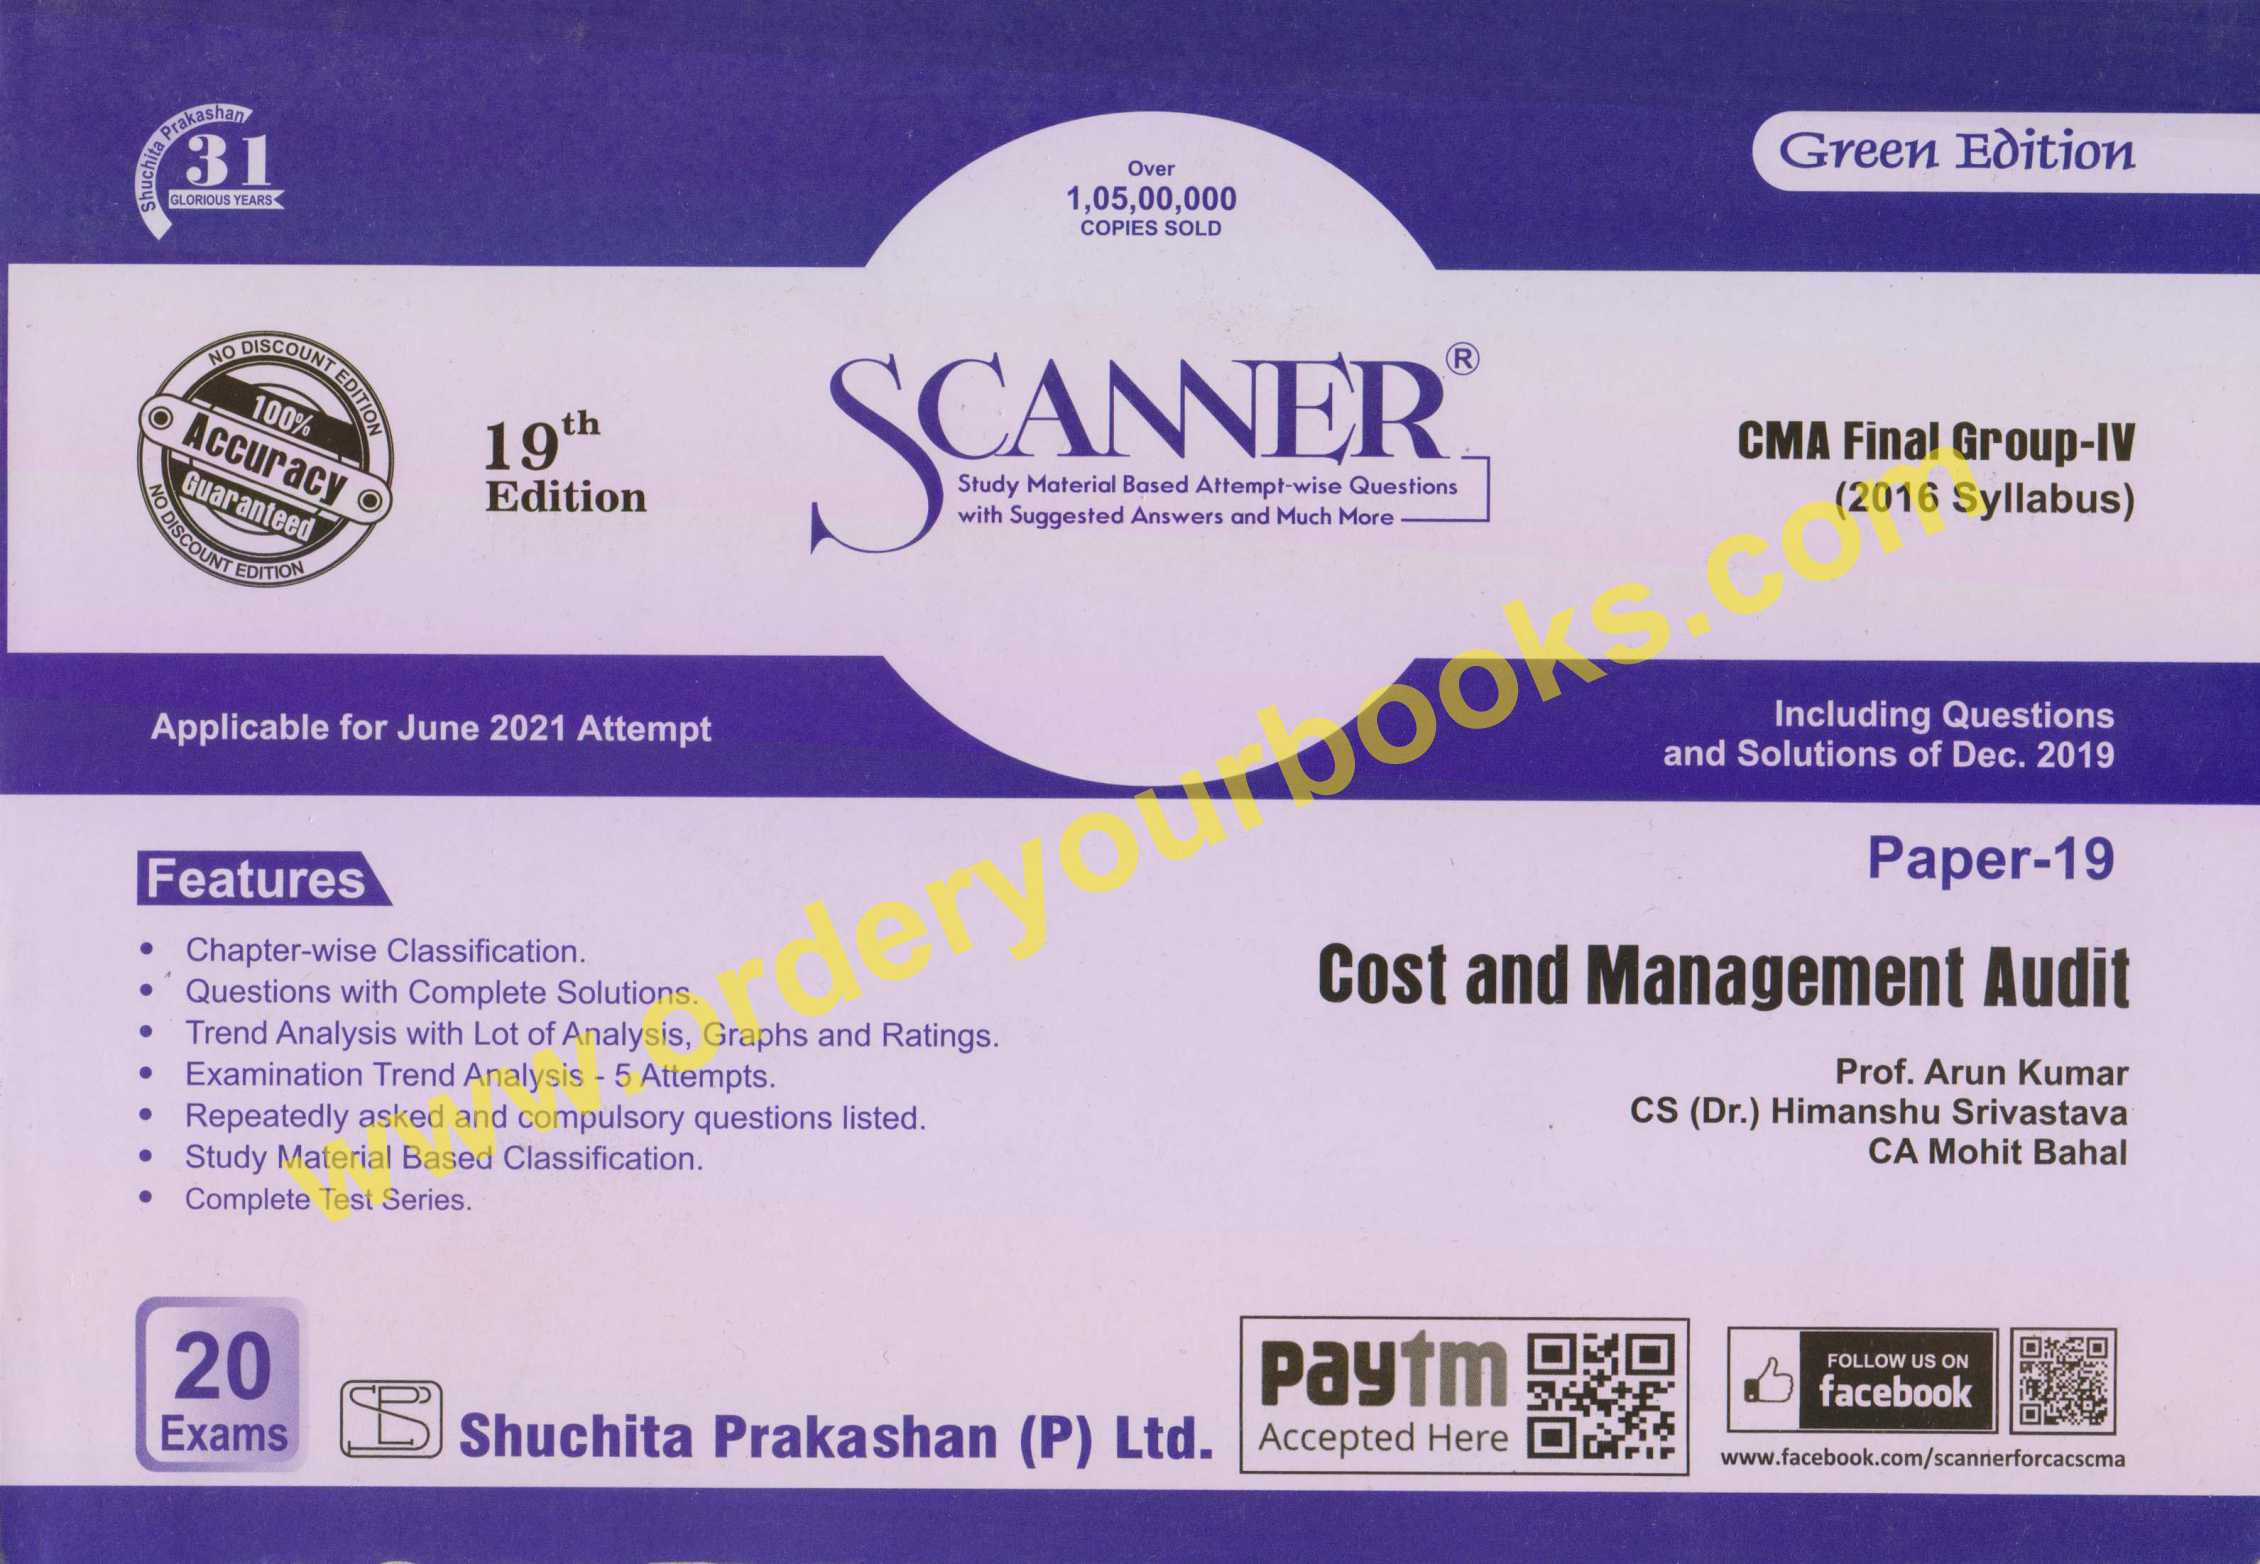 Shuchita Paper 19 CMA Final Group IV Solved Scanner for 2021 Cost and Management Audit for by Prof. Arun Kumar and CA Mohit Bahal (Shuchita Prakashan)